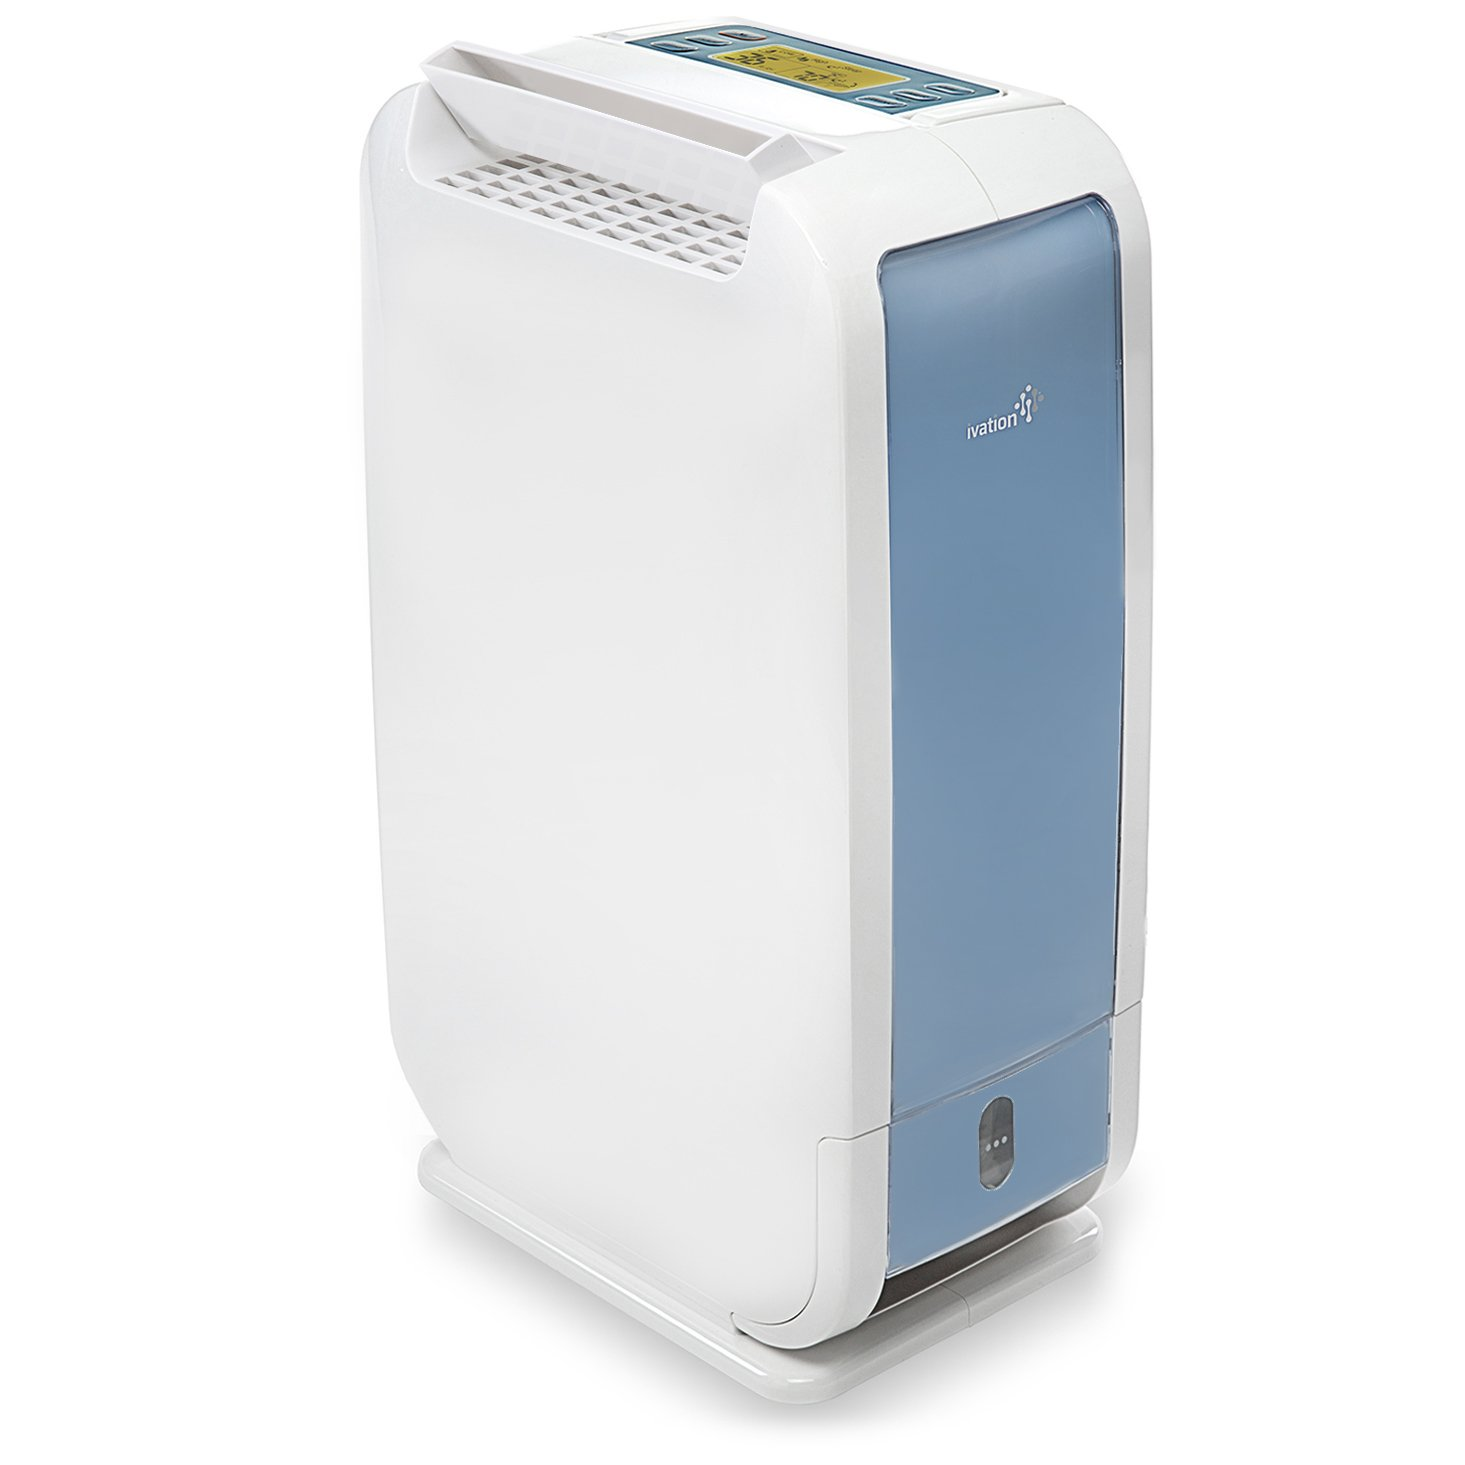 Ivation 13-Pint Small-Area Desiccant Dehumidifier Compact and Quiet - With Continuous Drain Hose for Smaller Spaces, Bathroom, Attic, Crawlspace and Closets - For Spaces Up To 270 Sq Ft, White by Ivation